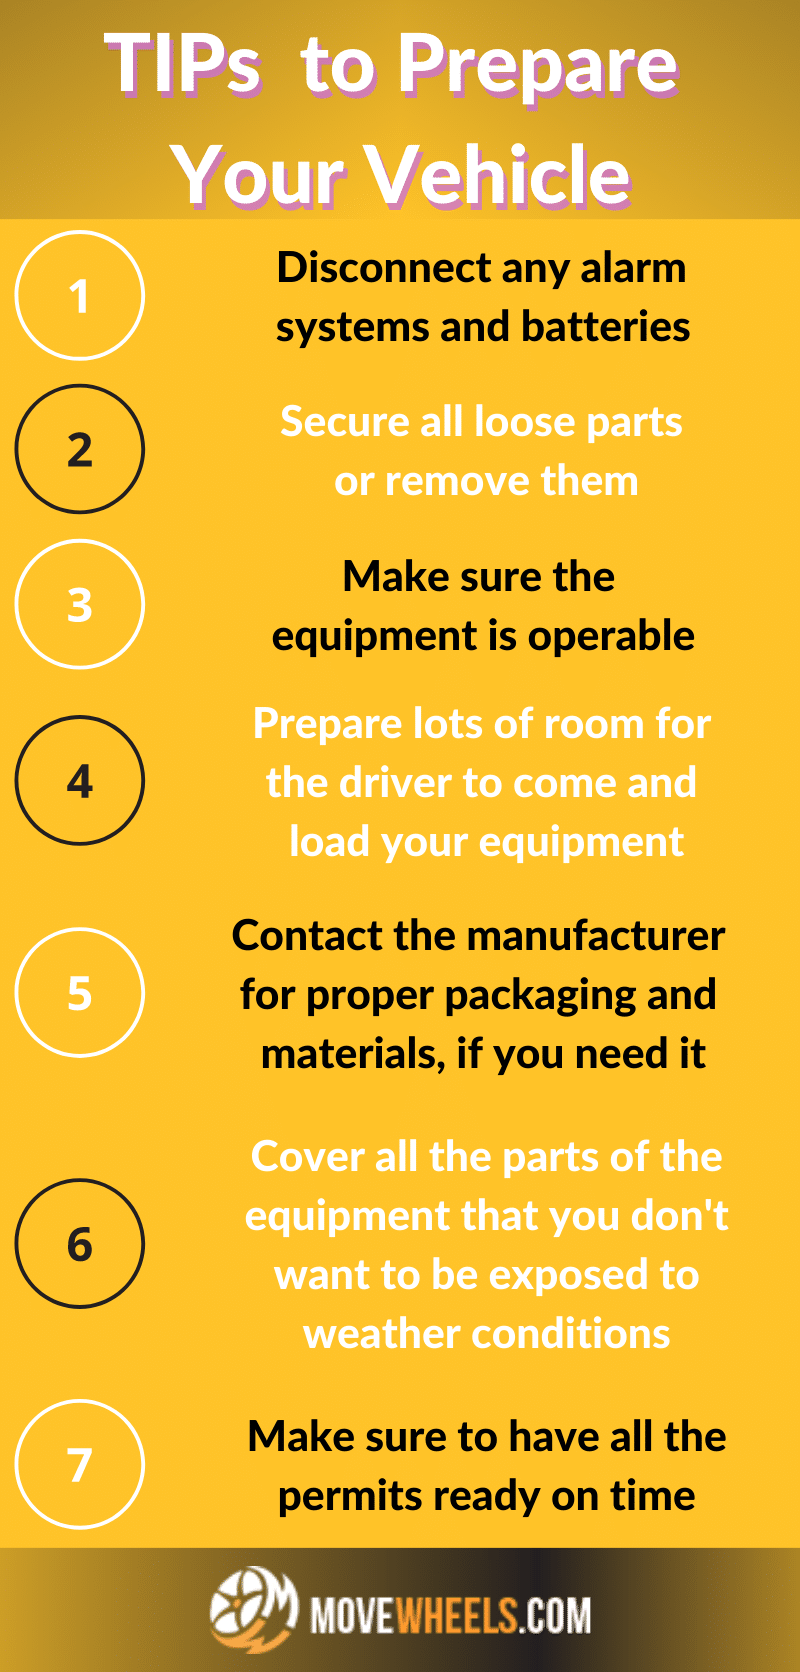 TIPs to Prepare Your Vehicle for the shipping process